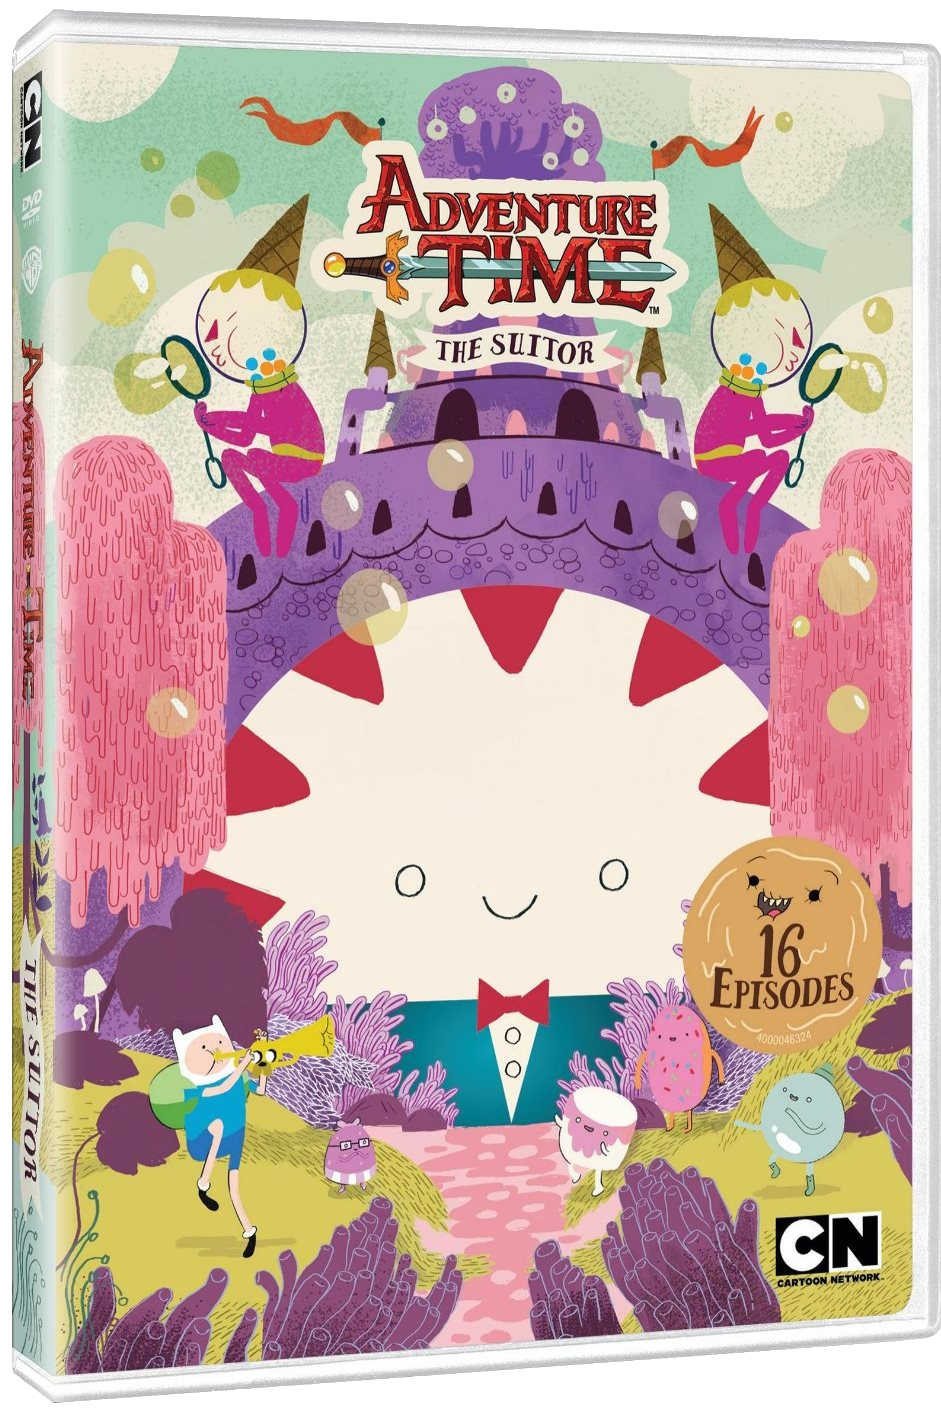 Adventure Time Princess Day adventure time: the suitor